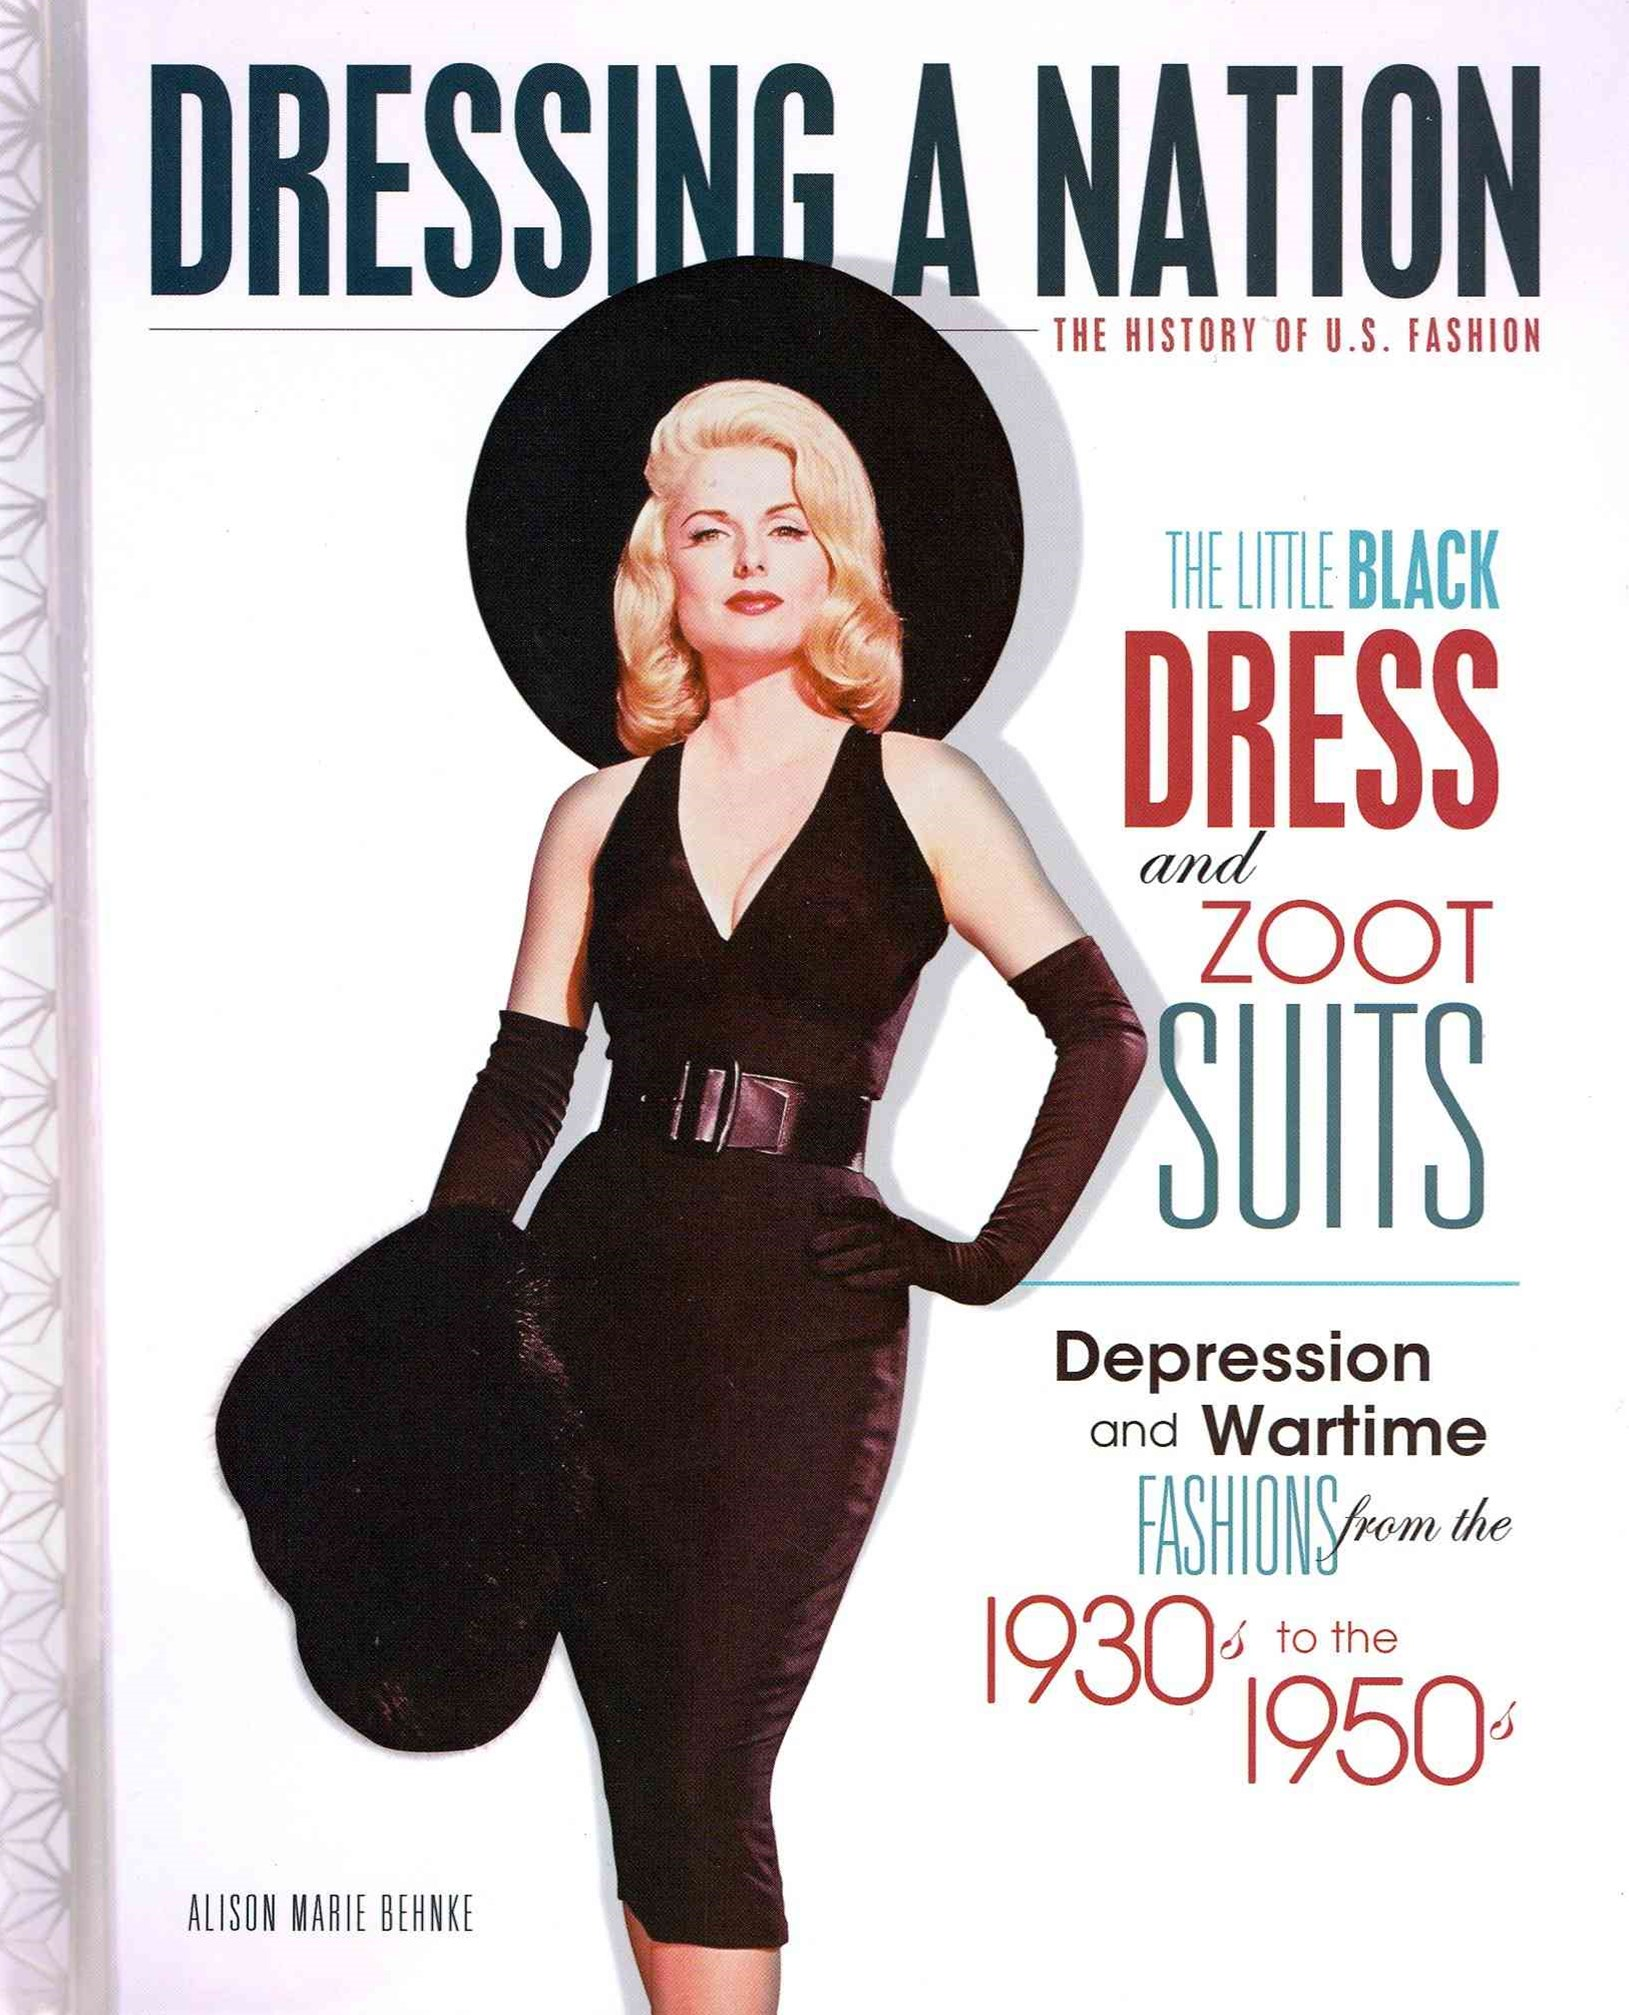 The Little Black Dress and Zoot Suits